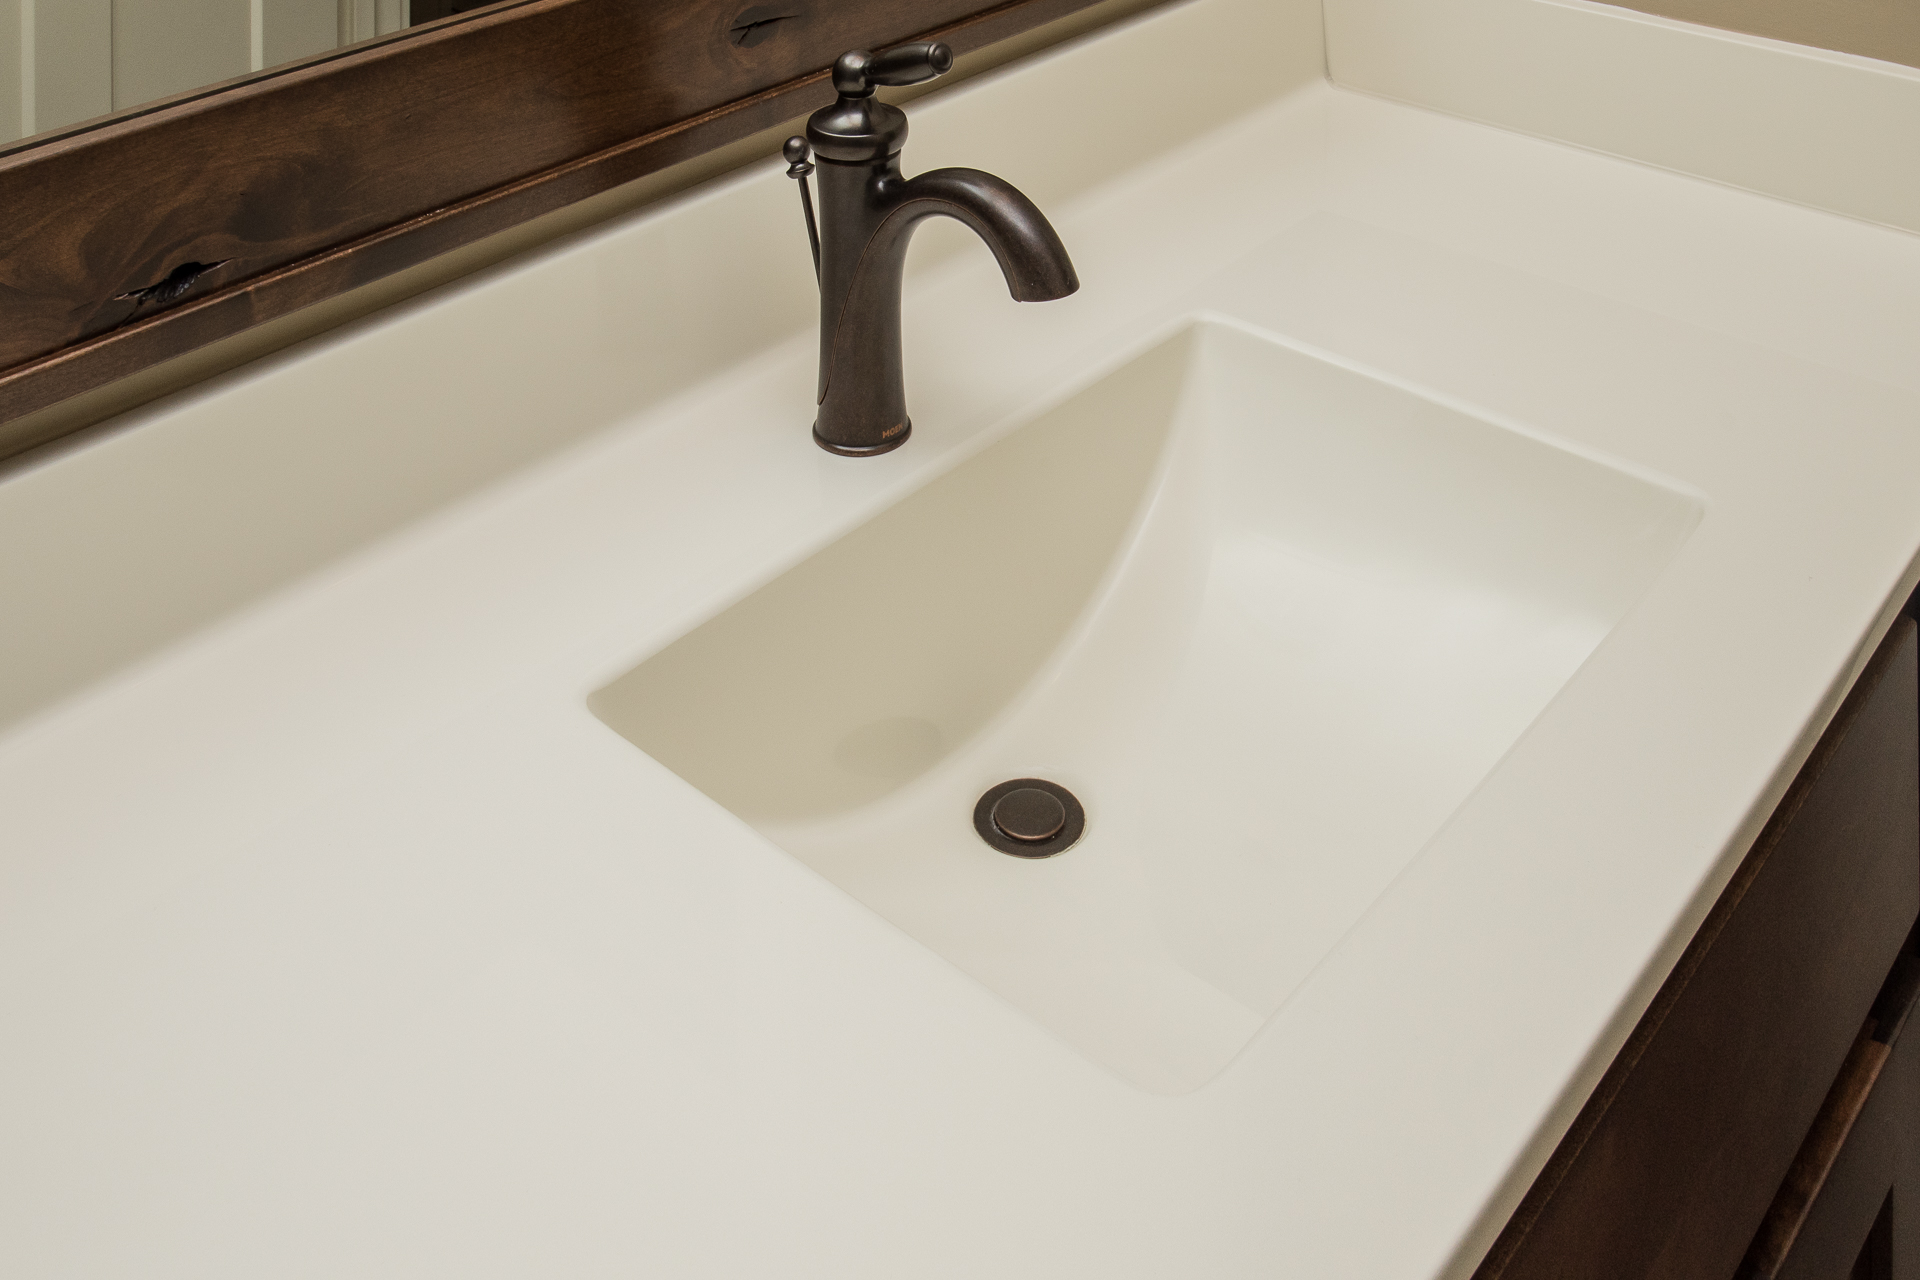 Cultured marble top with wave sink in #43 biscuit color, Moen Brantford oil rubbed bronze faucet